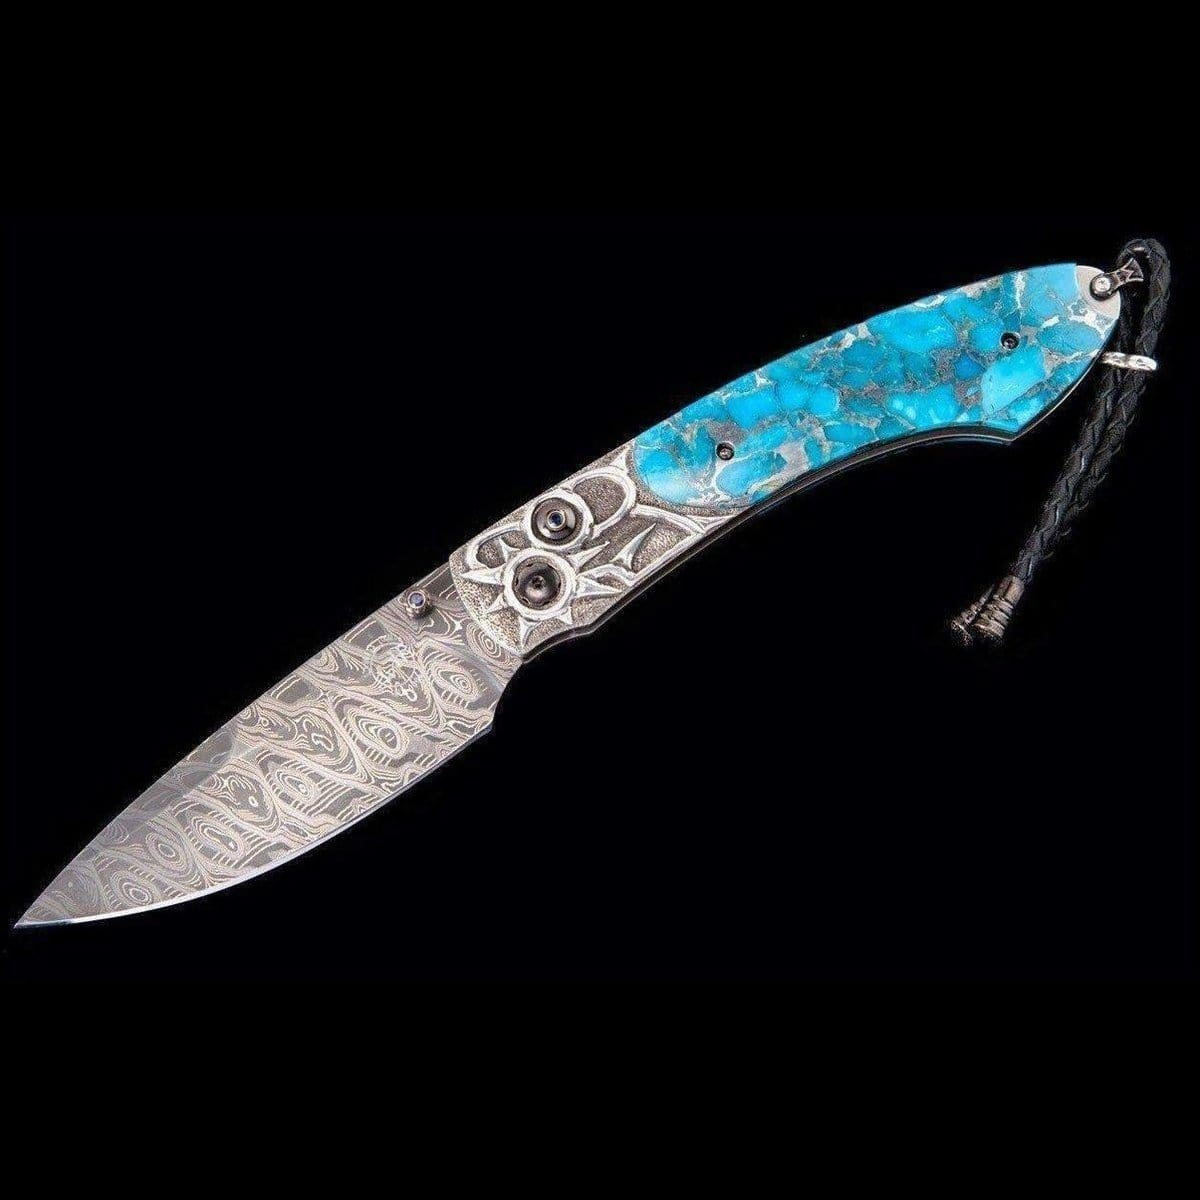 Spearpoint Birdseye Limited Edition Knife - B12 Birdseye-William Henry-Renee Taylor Gallery